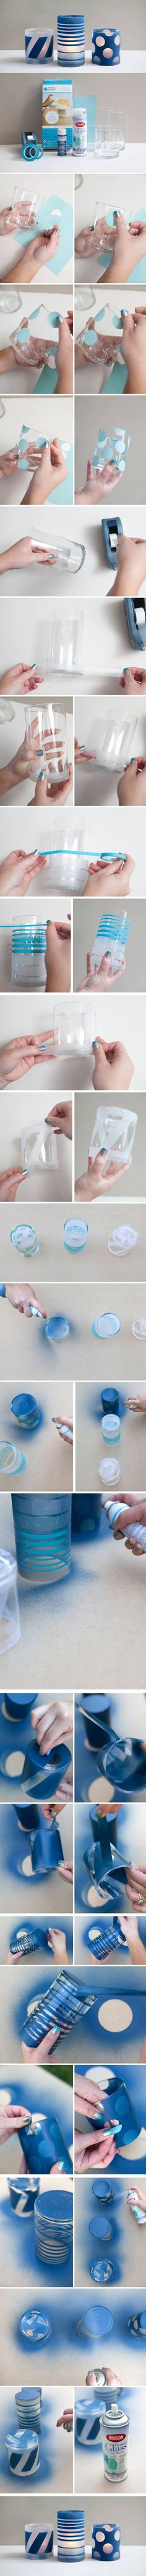 DIY Painted Glass Jars: